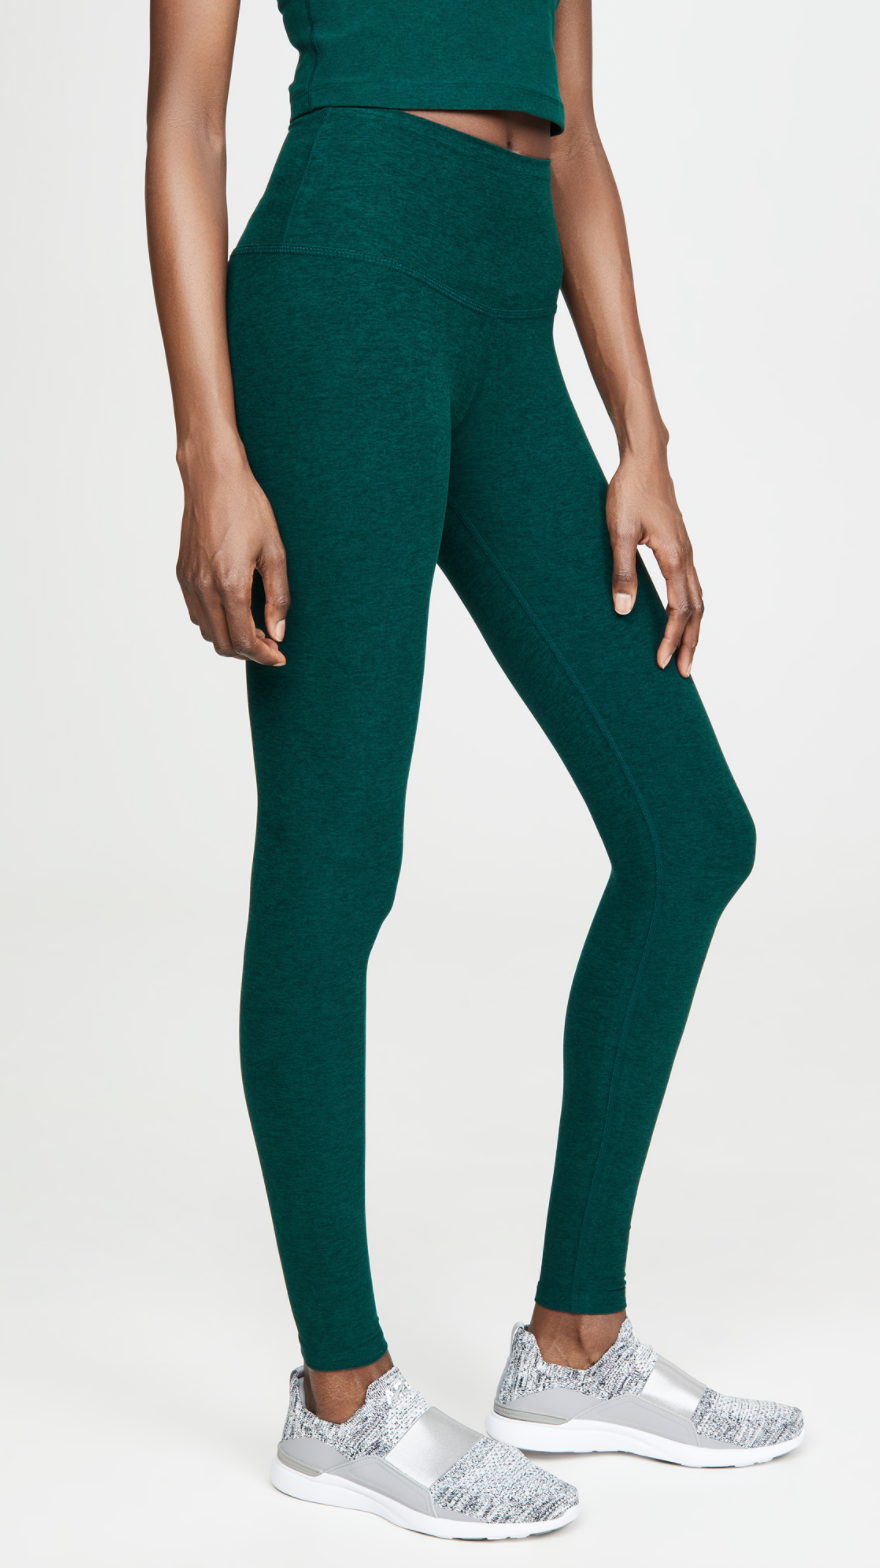 Beyond Yoga 'Spacedye Take Me Higher' Long Leggings in Hunter Green (Photo via ShopBop)